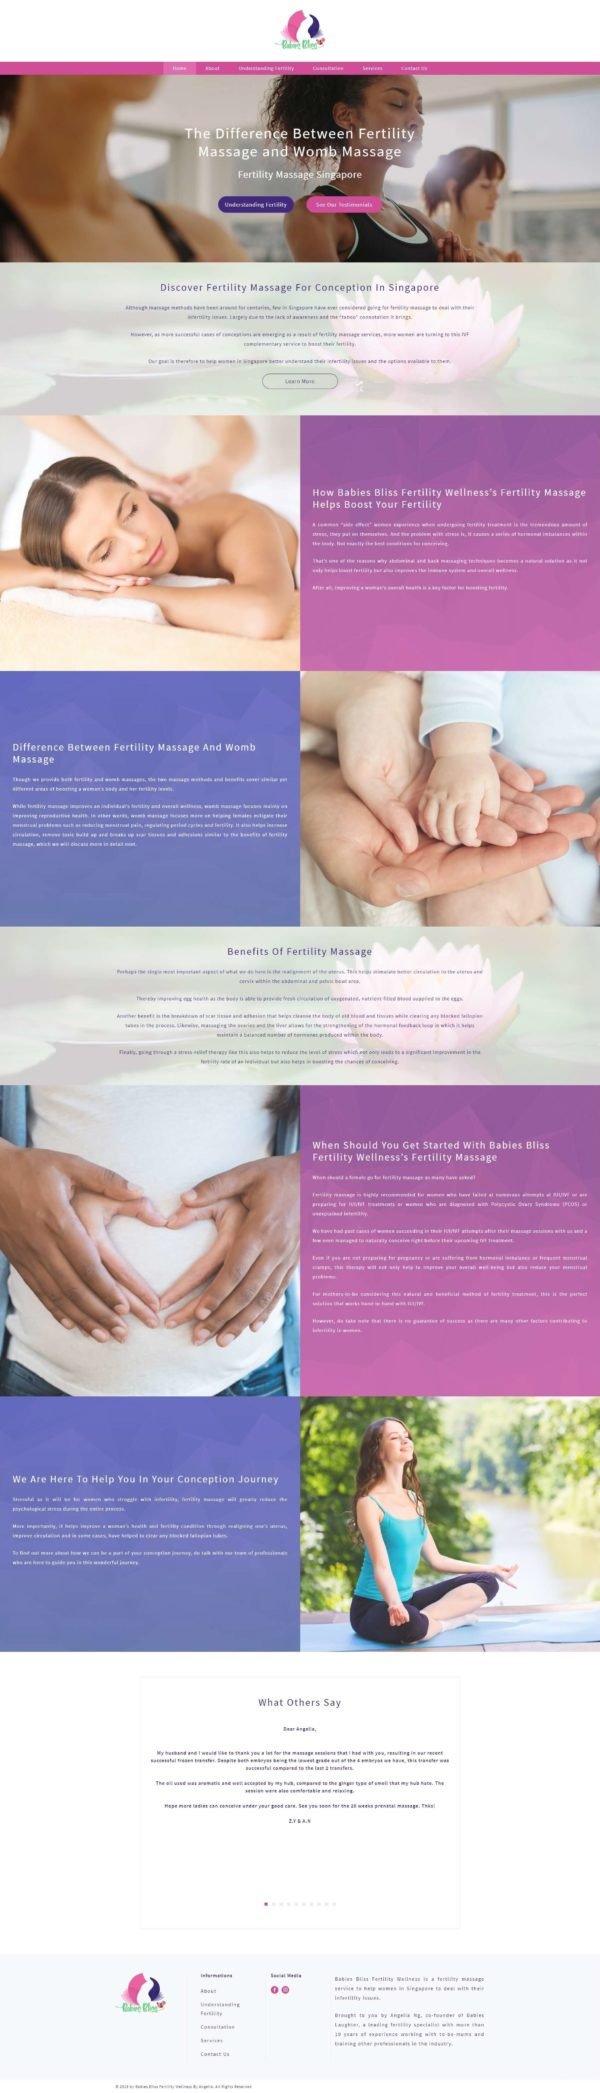 Web Page Writing Service Sample - BabiesBliss - Home Page Full - 131219